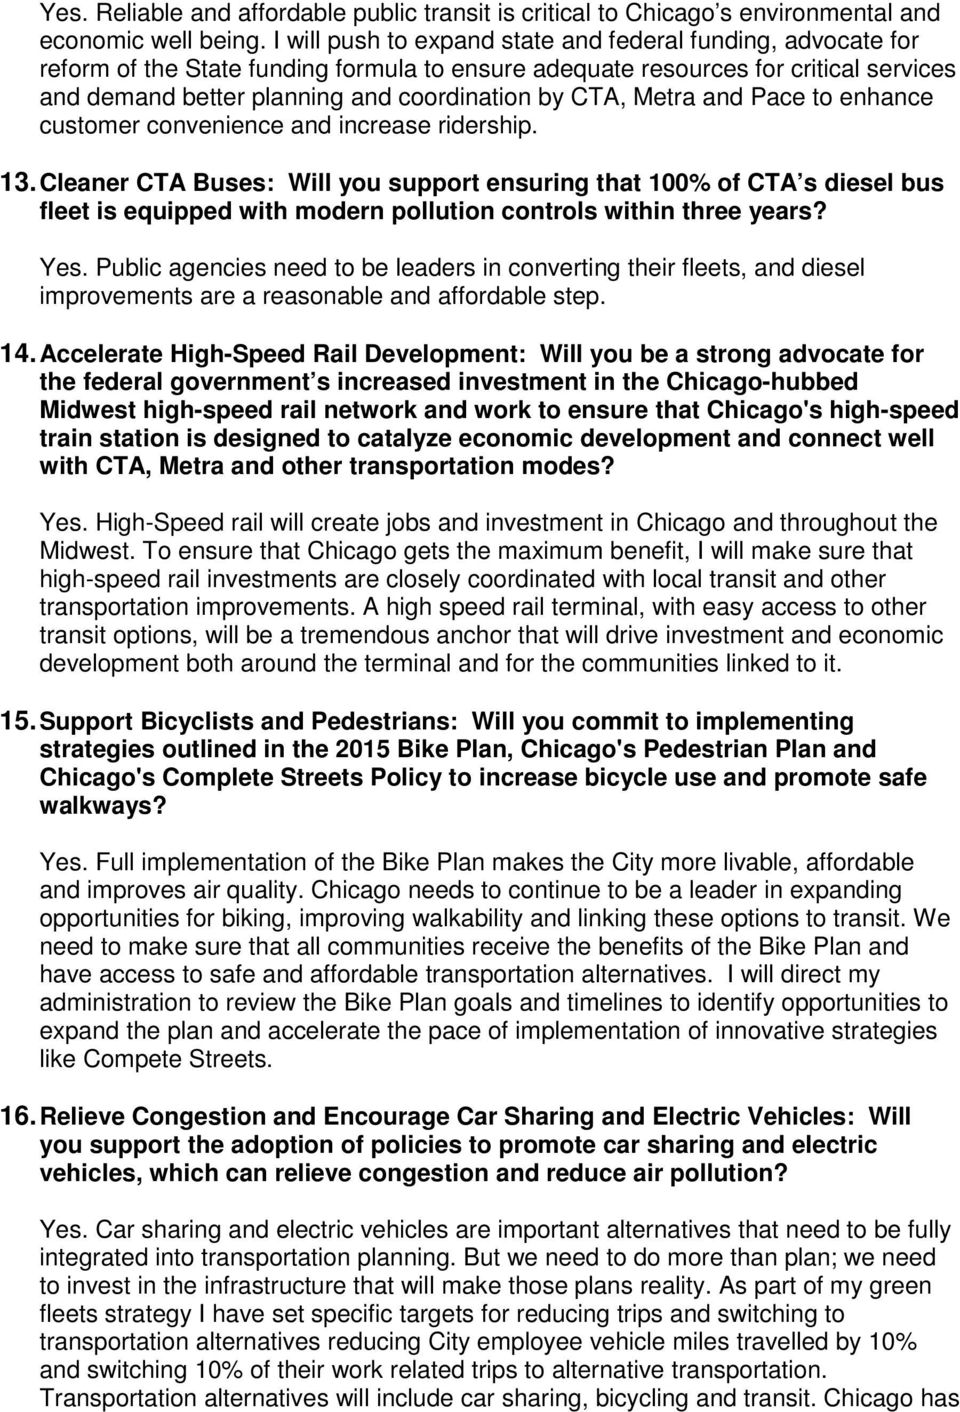 CTA, Metra and Pace to enhance customer convenience and increase ridership. 13.